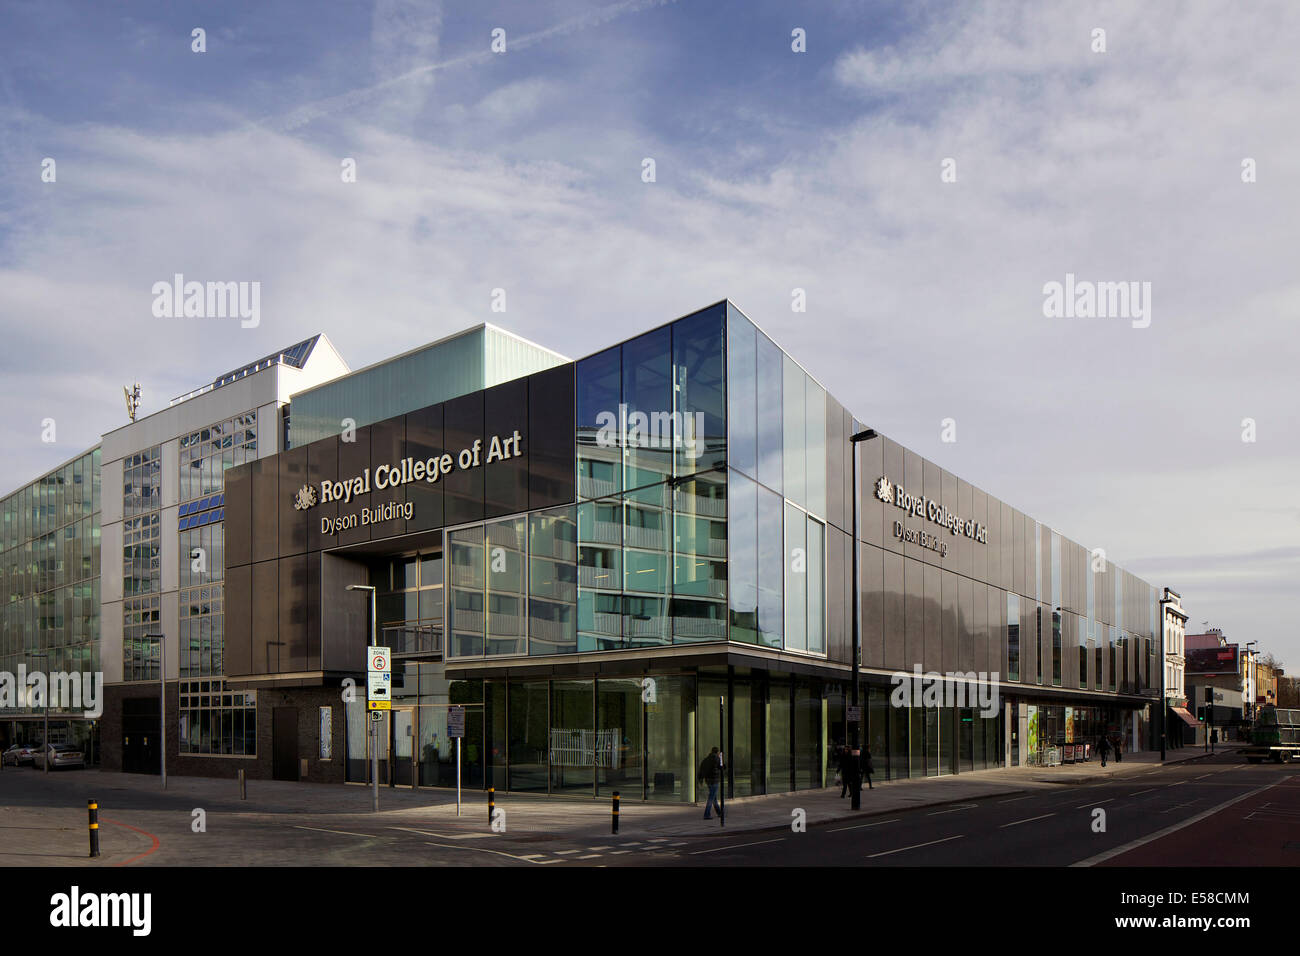 Royal College Of Art >> Royal College Of Art Battersea London New Building For